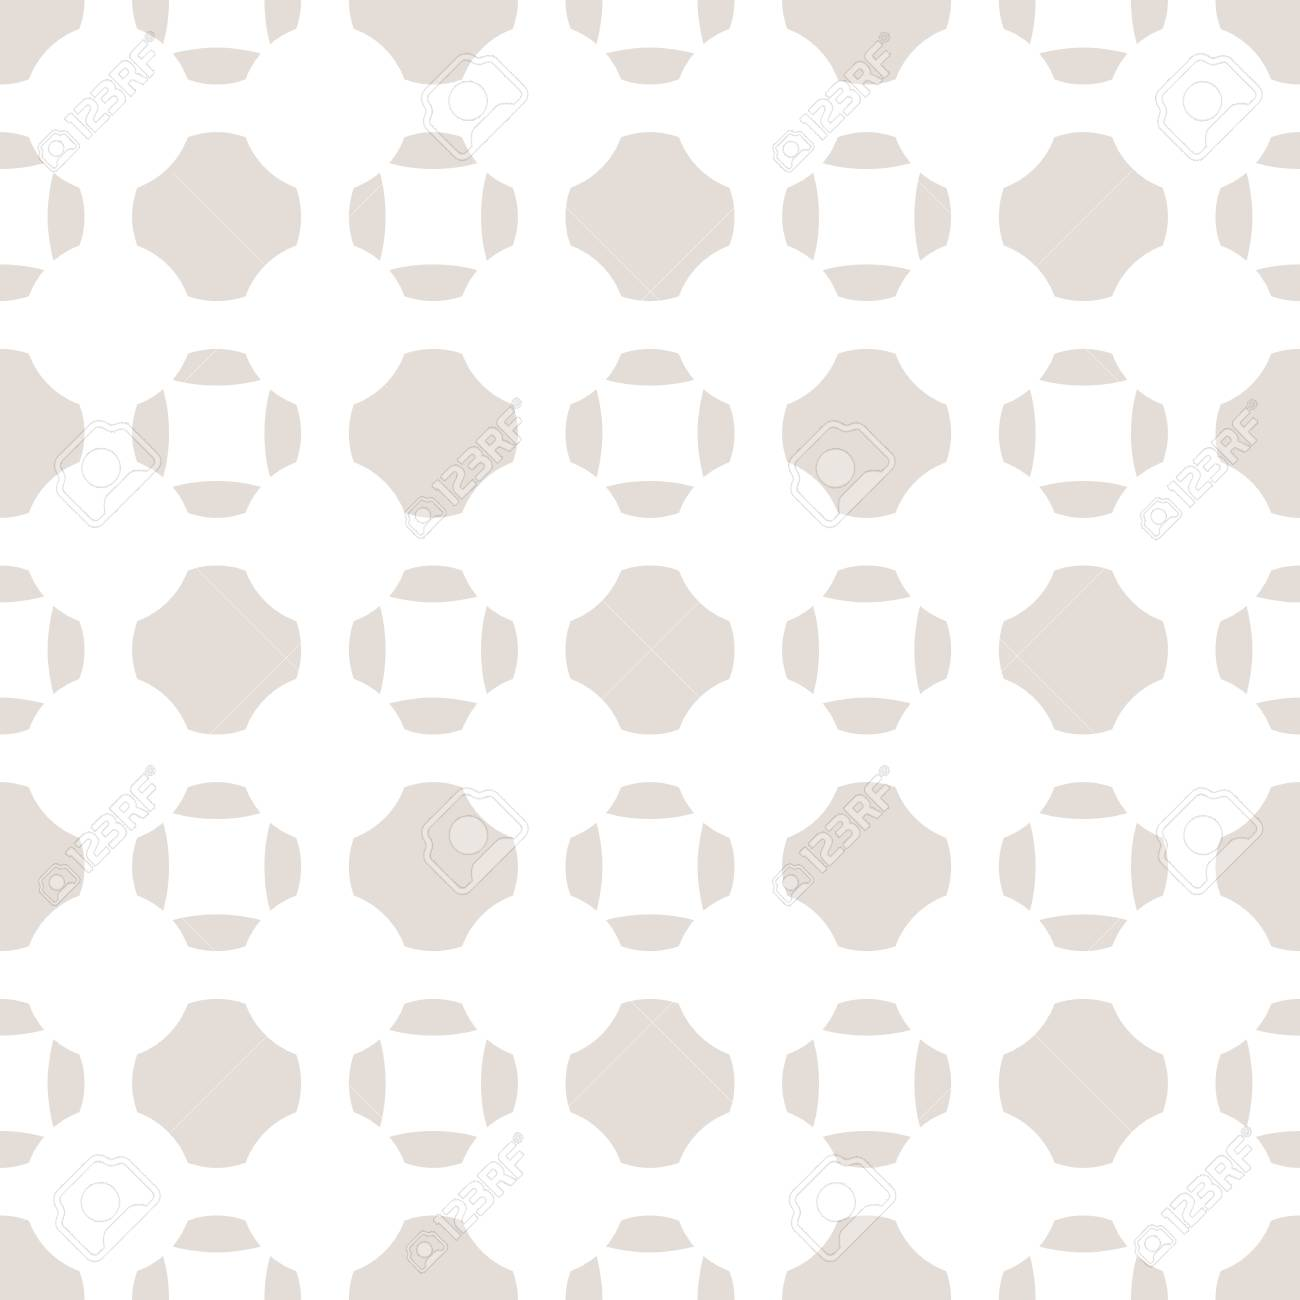 Vector Minimalist Seamless Pattern In Neutral Colors White And